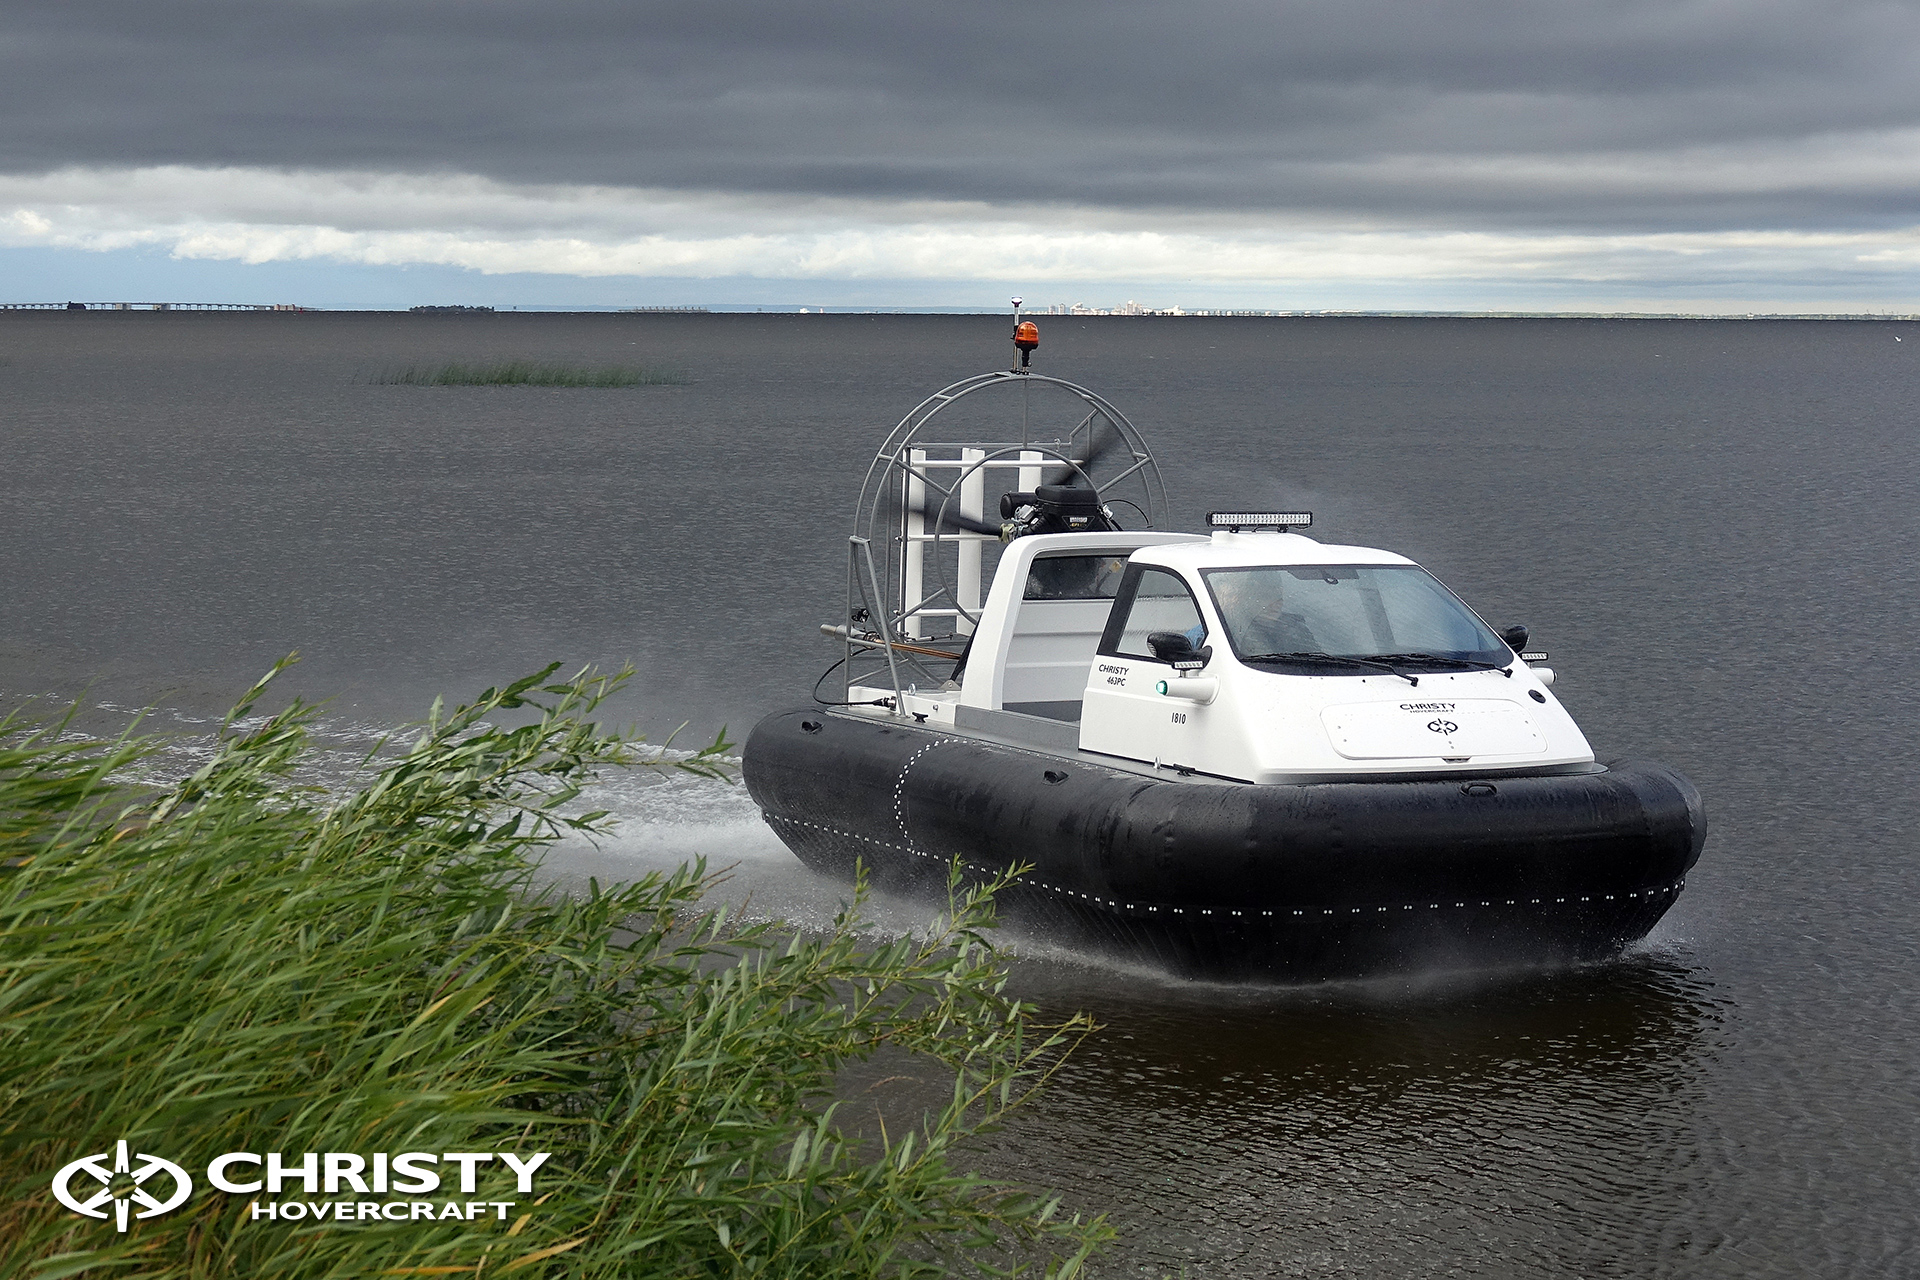 Hovercraft Christy 463 PC in Storm 290618 17.jpg | фото №15